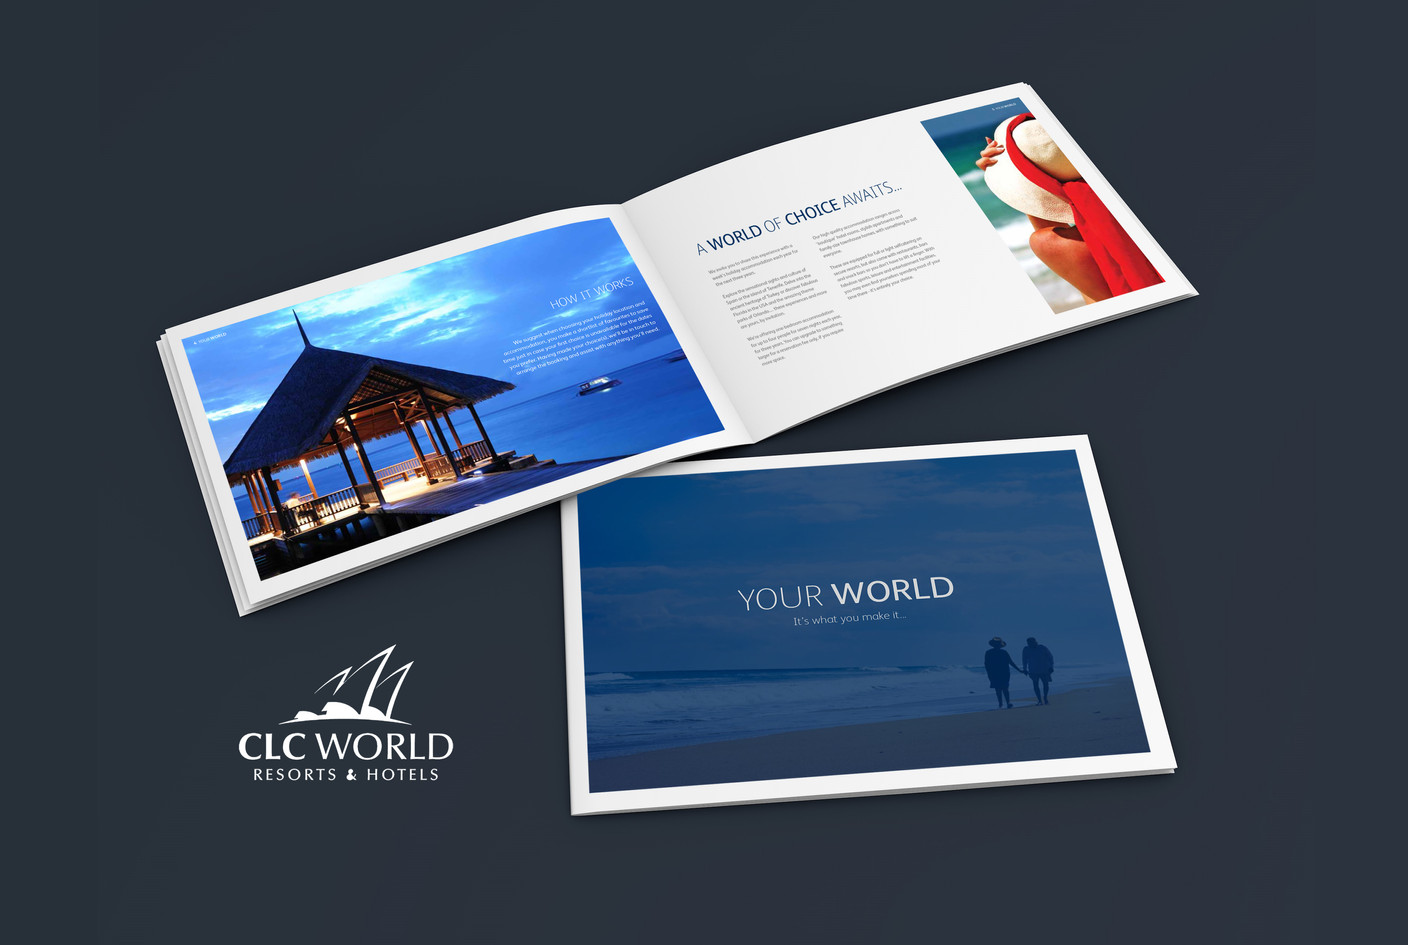 CLC World Holidays   I   CLC World Resorts & Hotels